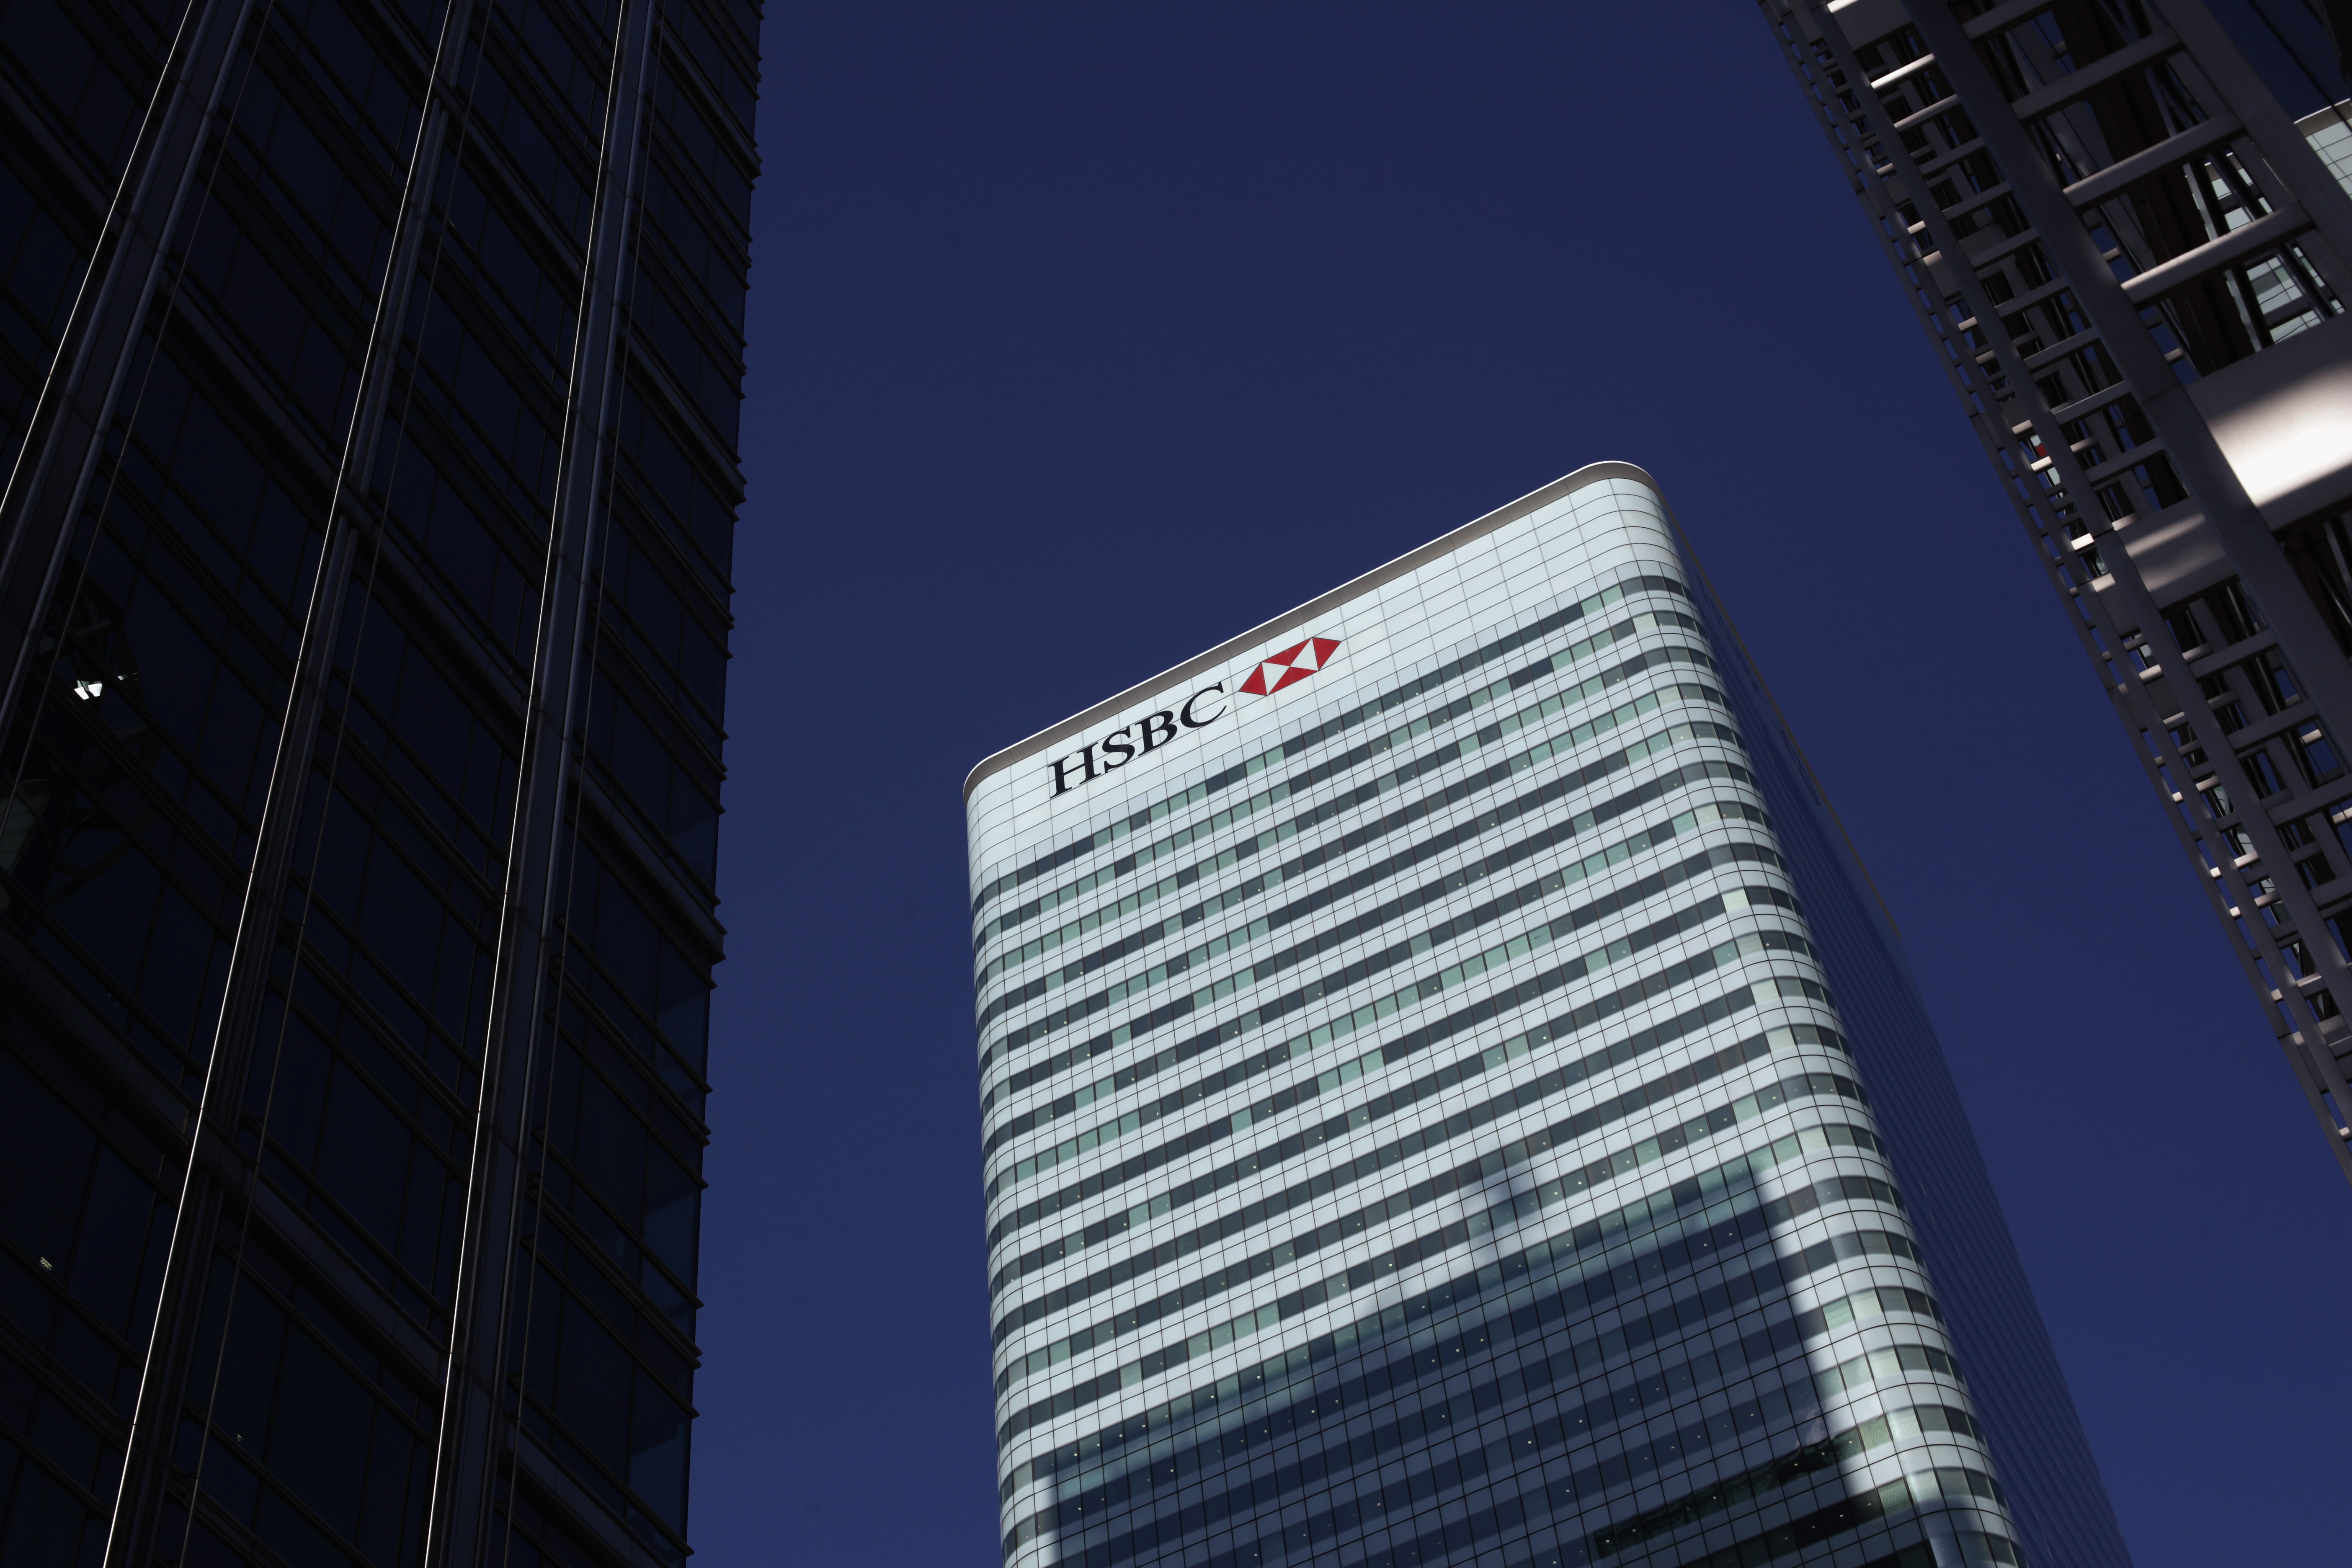 HSBC axes nearly 5,000 jobs in bid to reduce salary costs